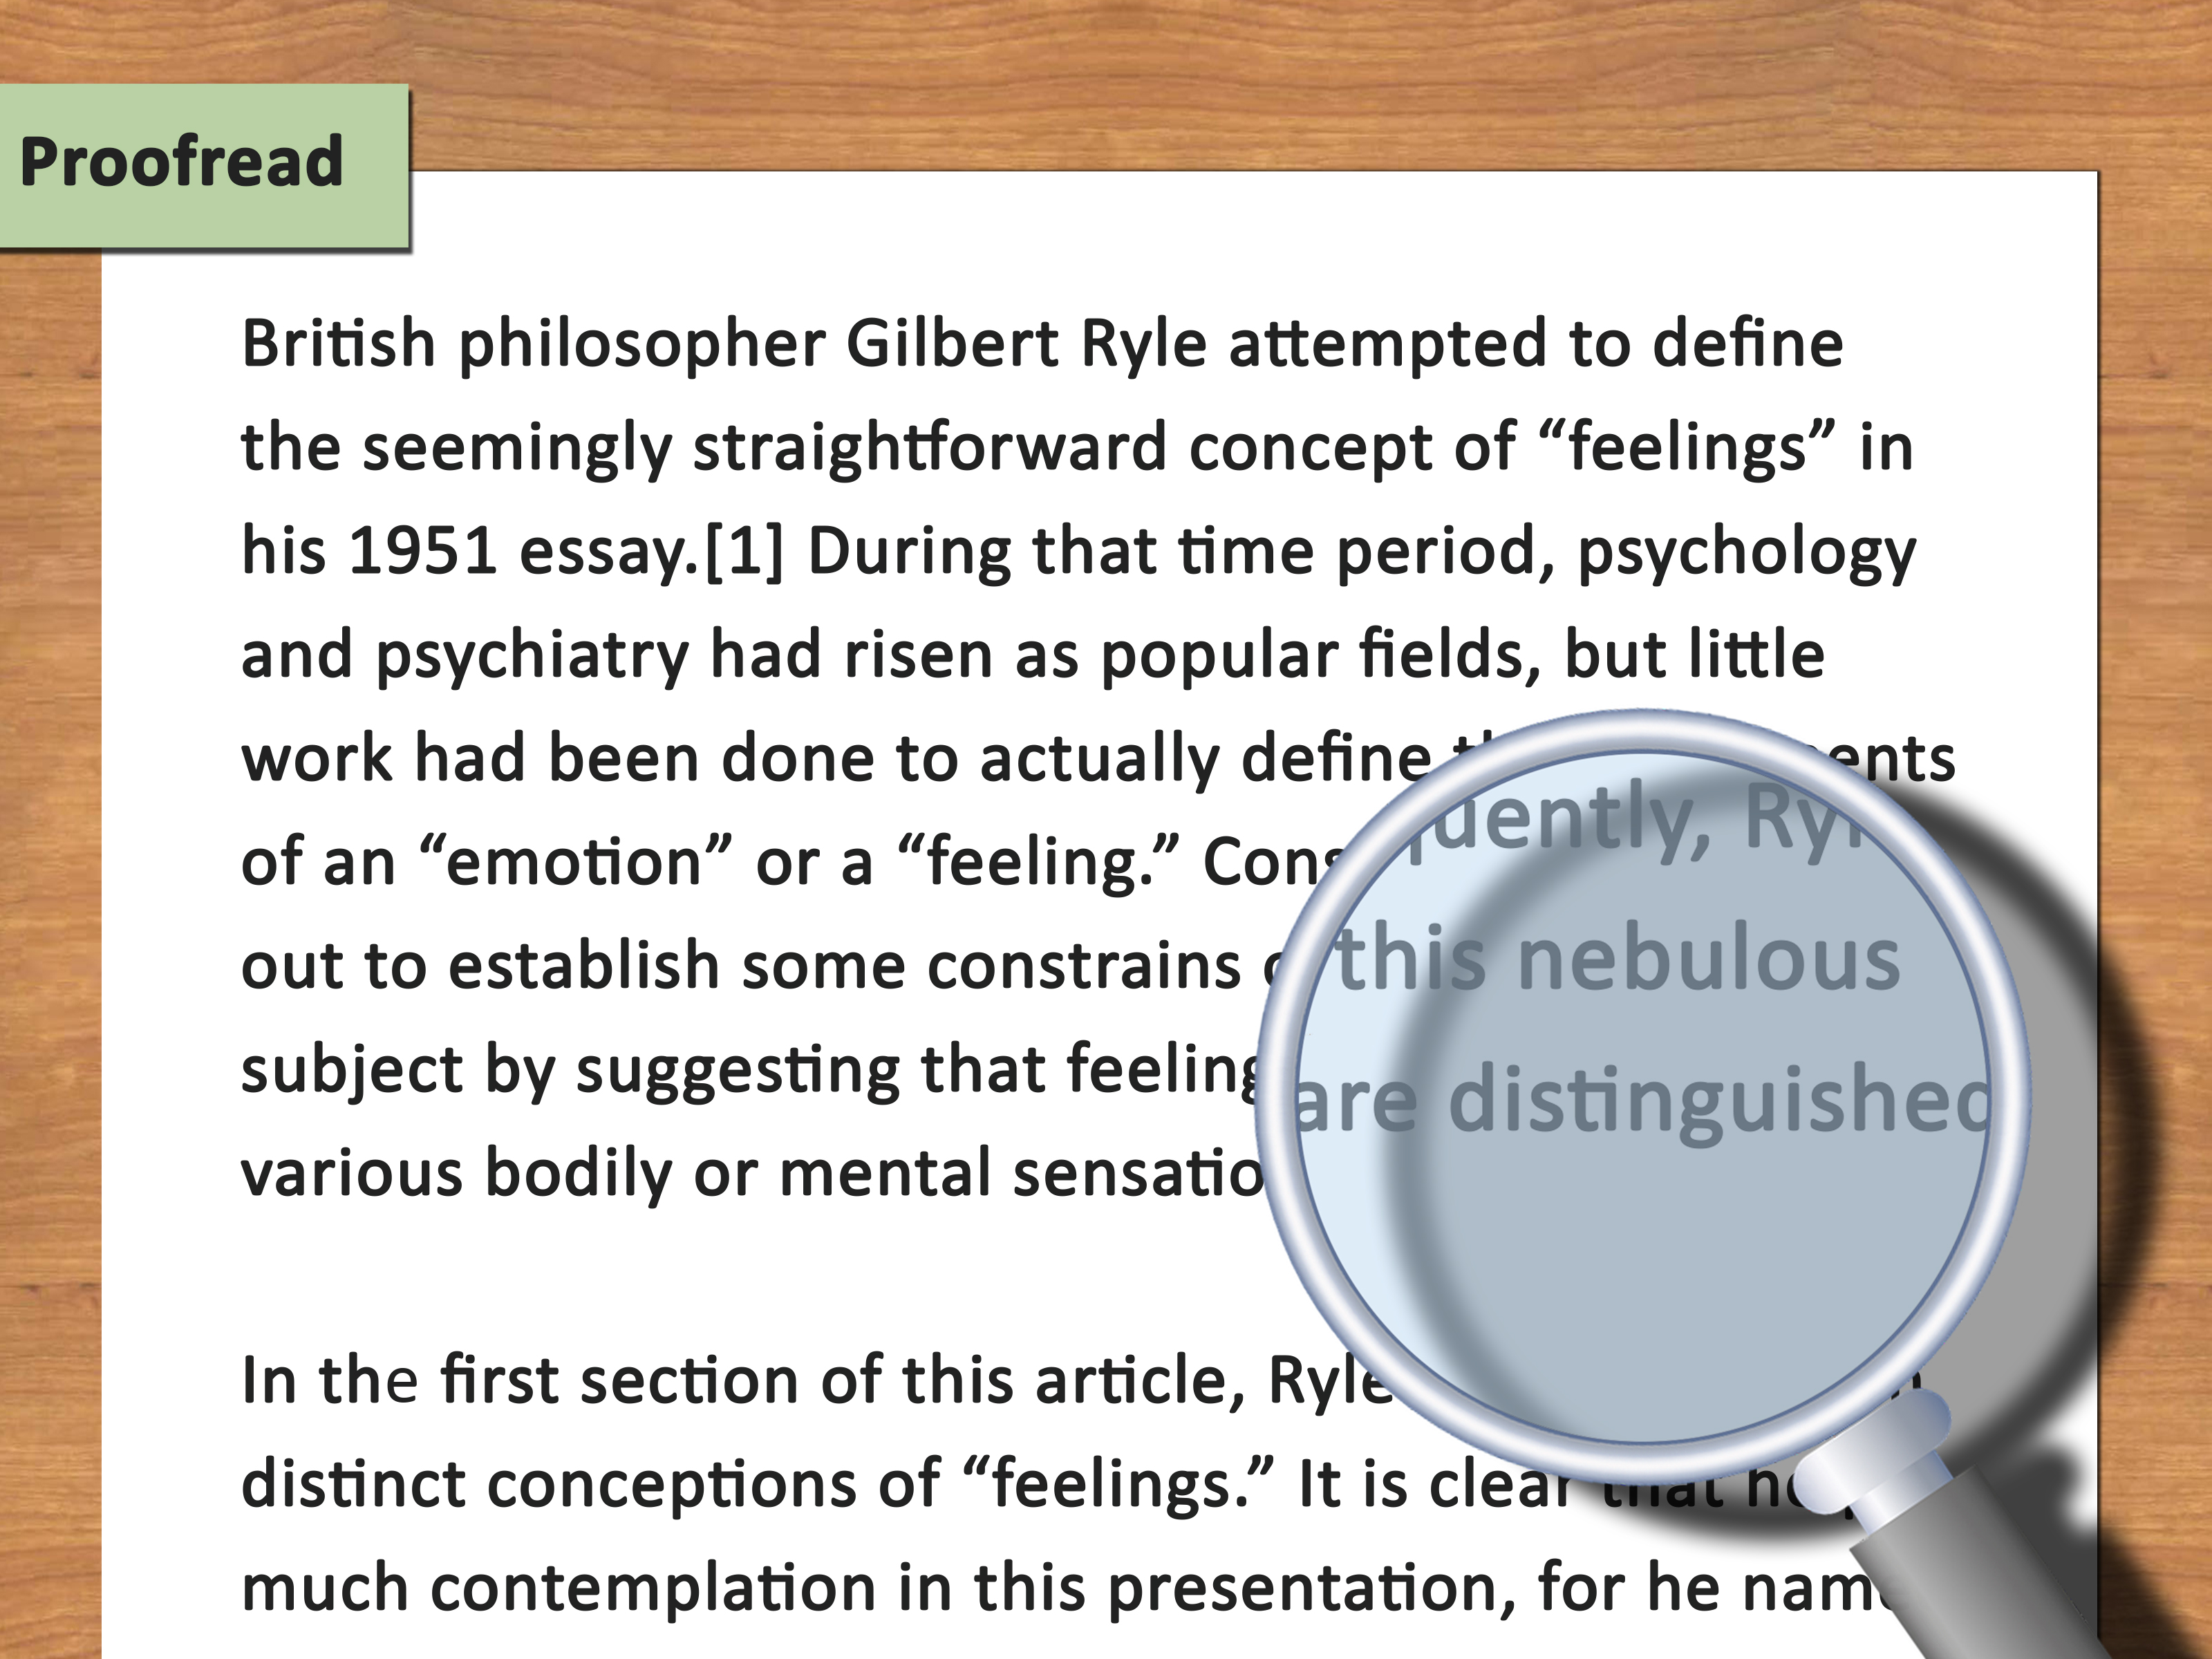 002 Writenrticle Review Step Essay Example How To Shocking Write A Literature Paper Van Wee Critical Sample Full